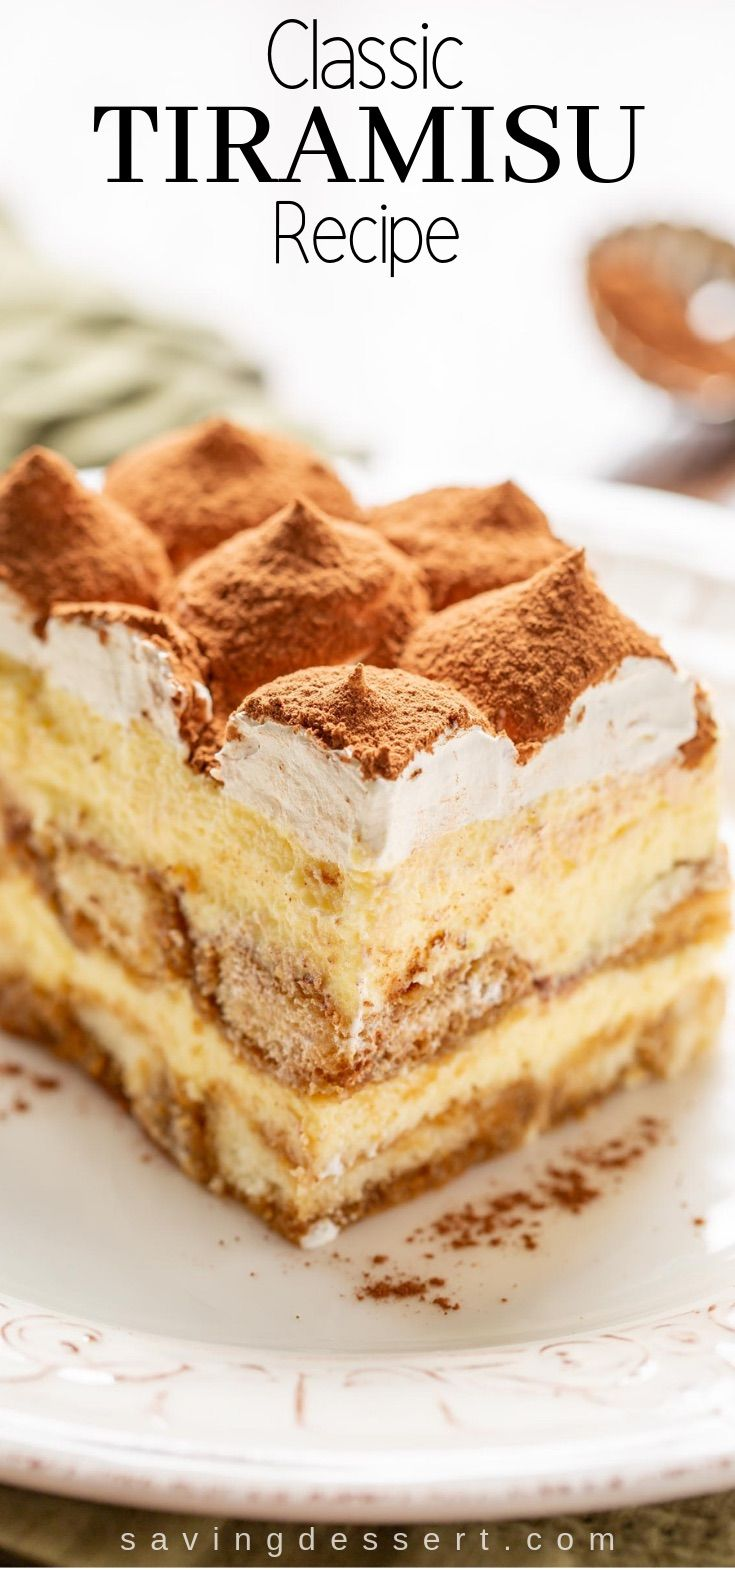 Tiramisu You don't have to be Italian to enjoy this coffee-flavored Tiramisu with a little something extra from the Kahlua liqueur.